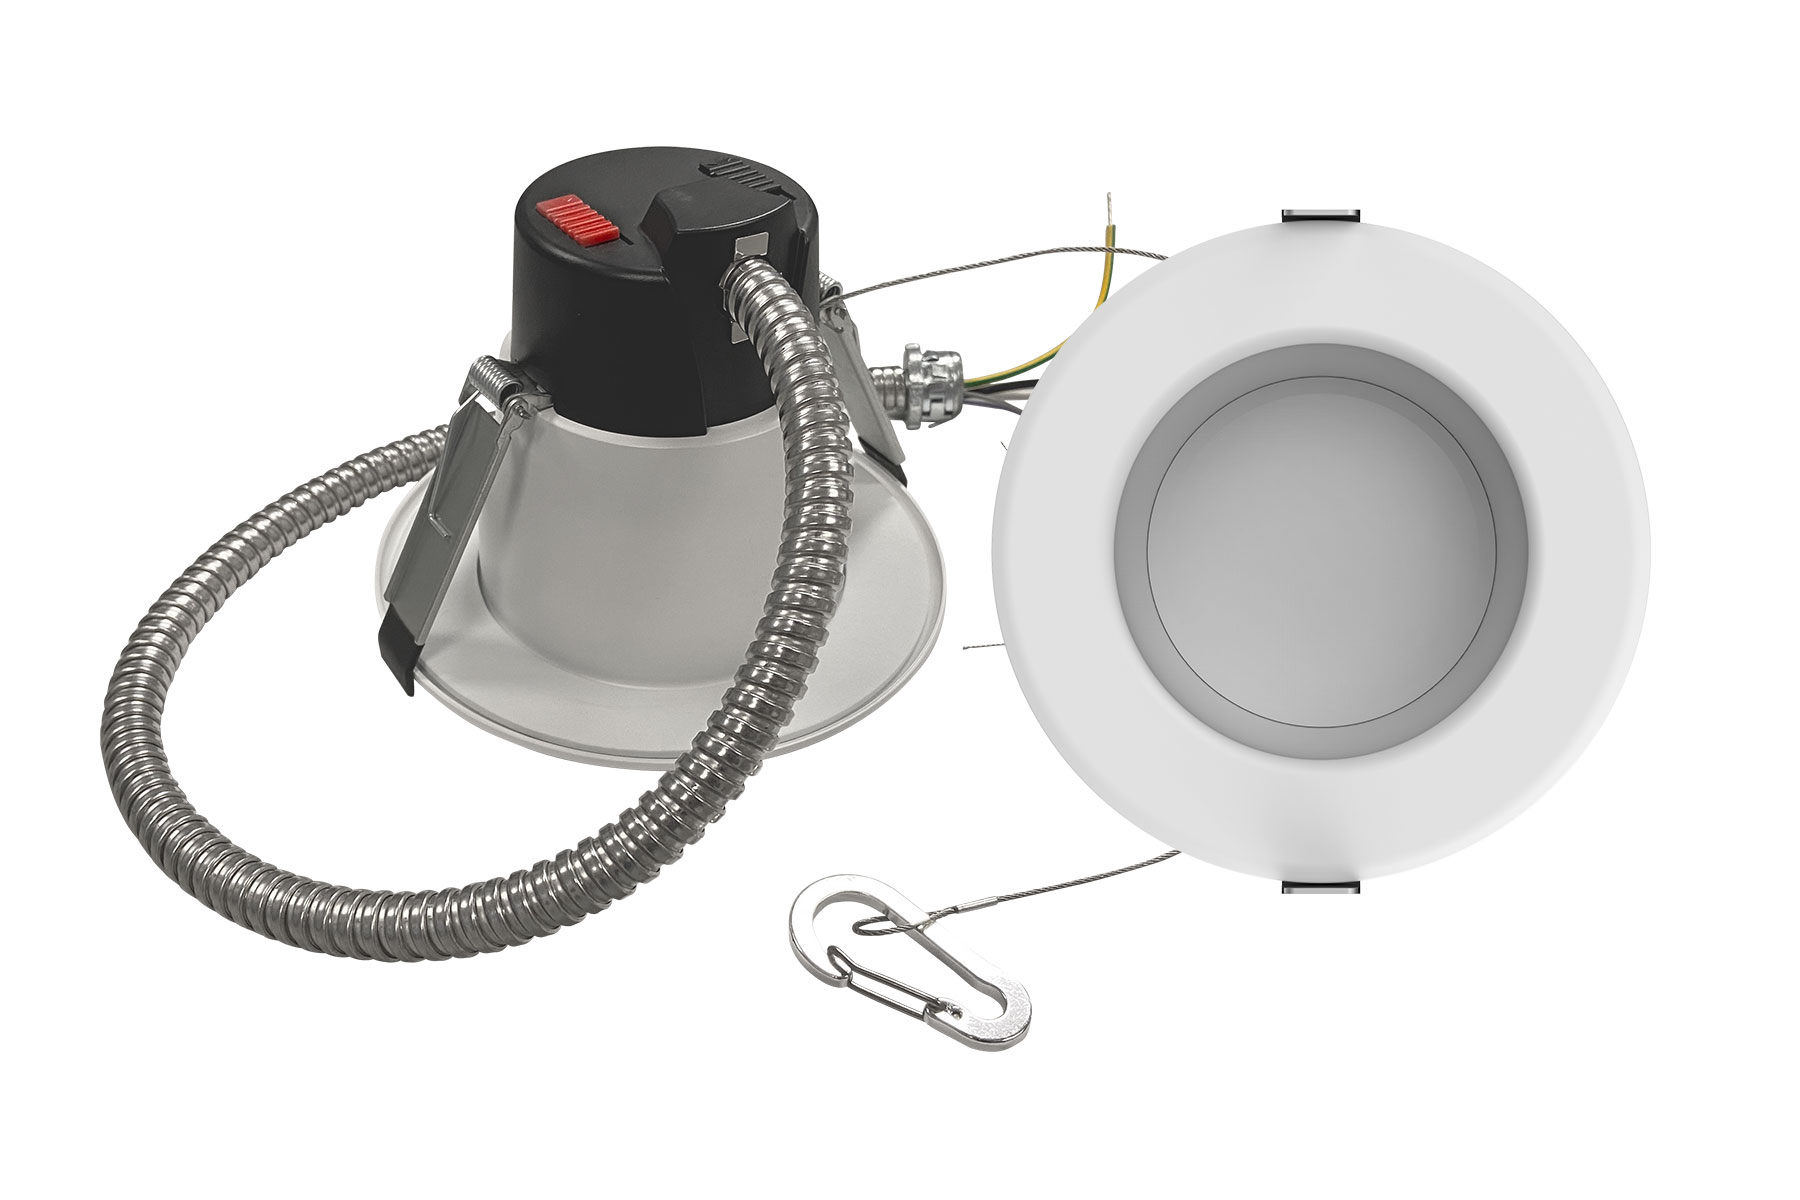 6 INCH. ROUND LED COMMERCIAL RECESSED LIGHTING